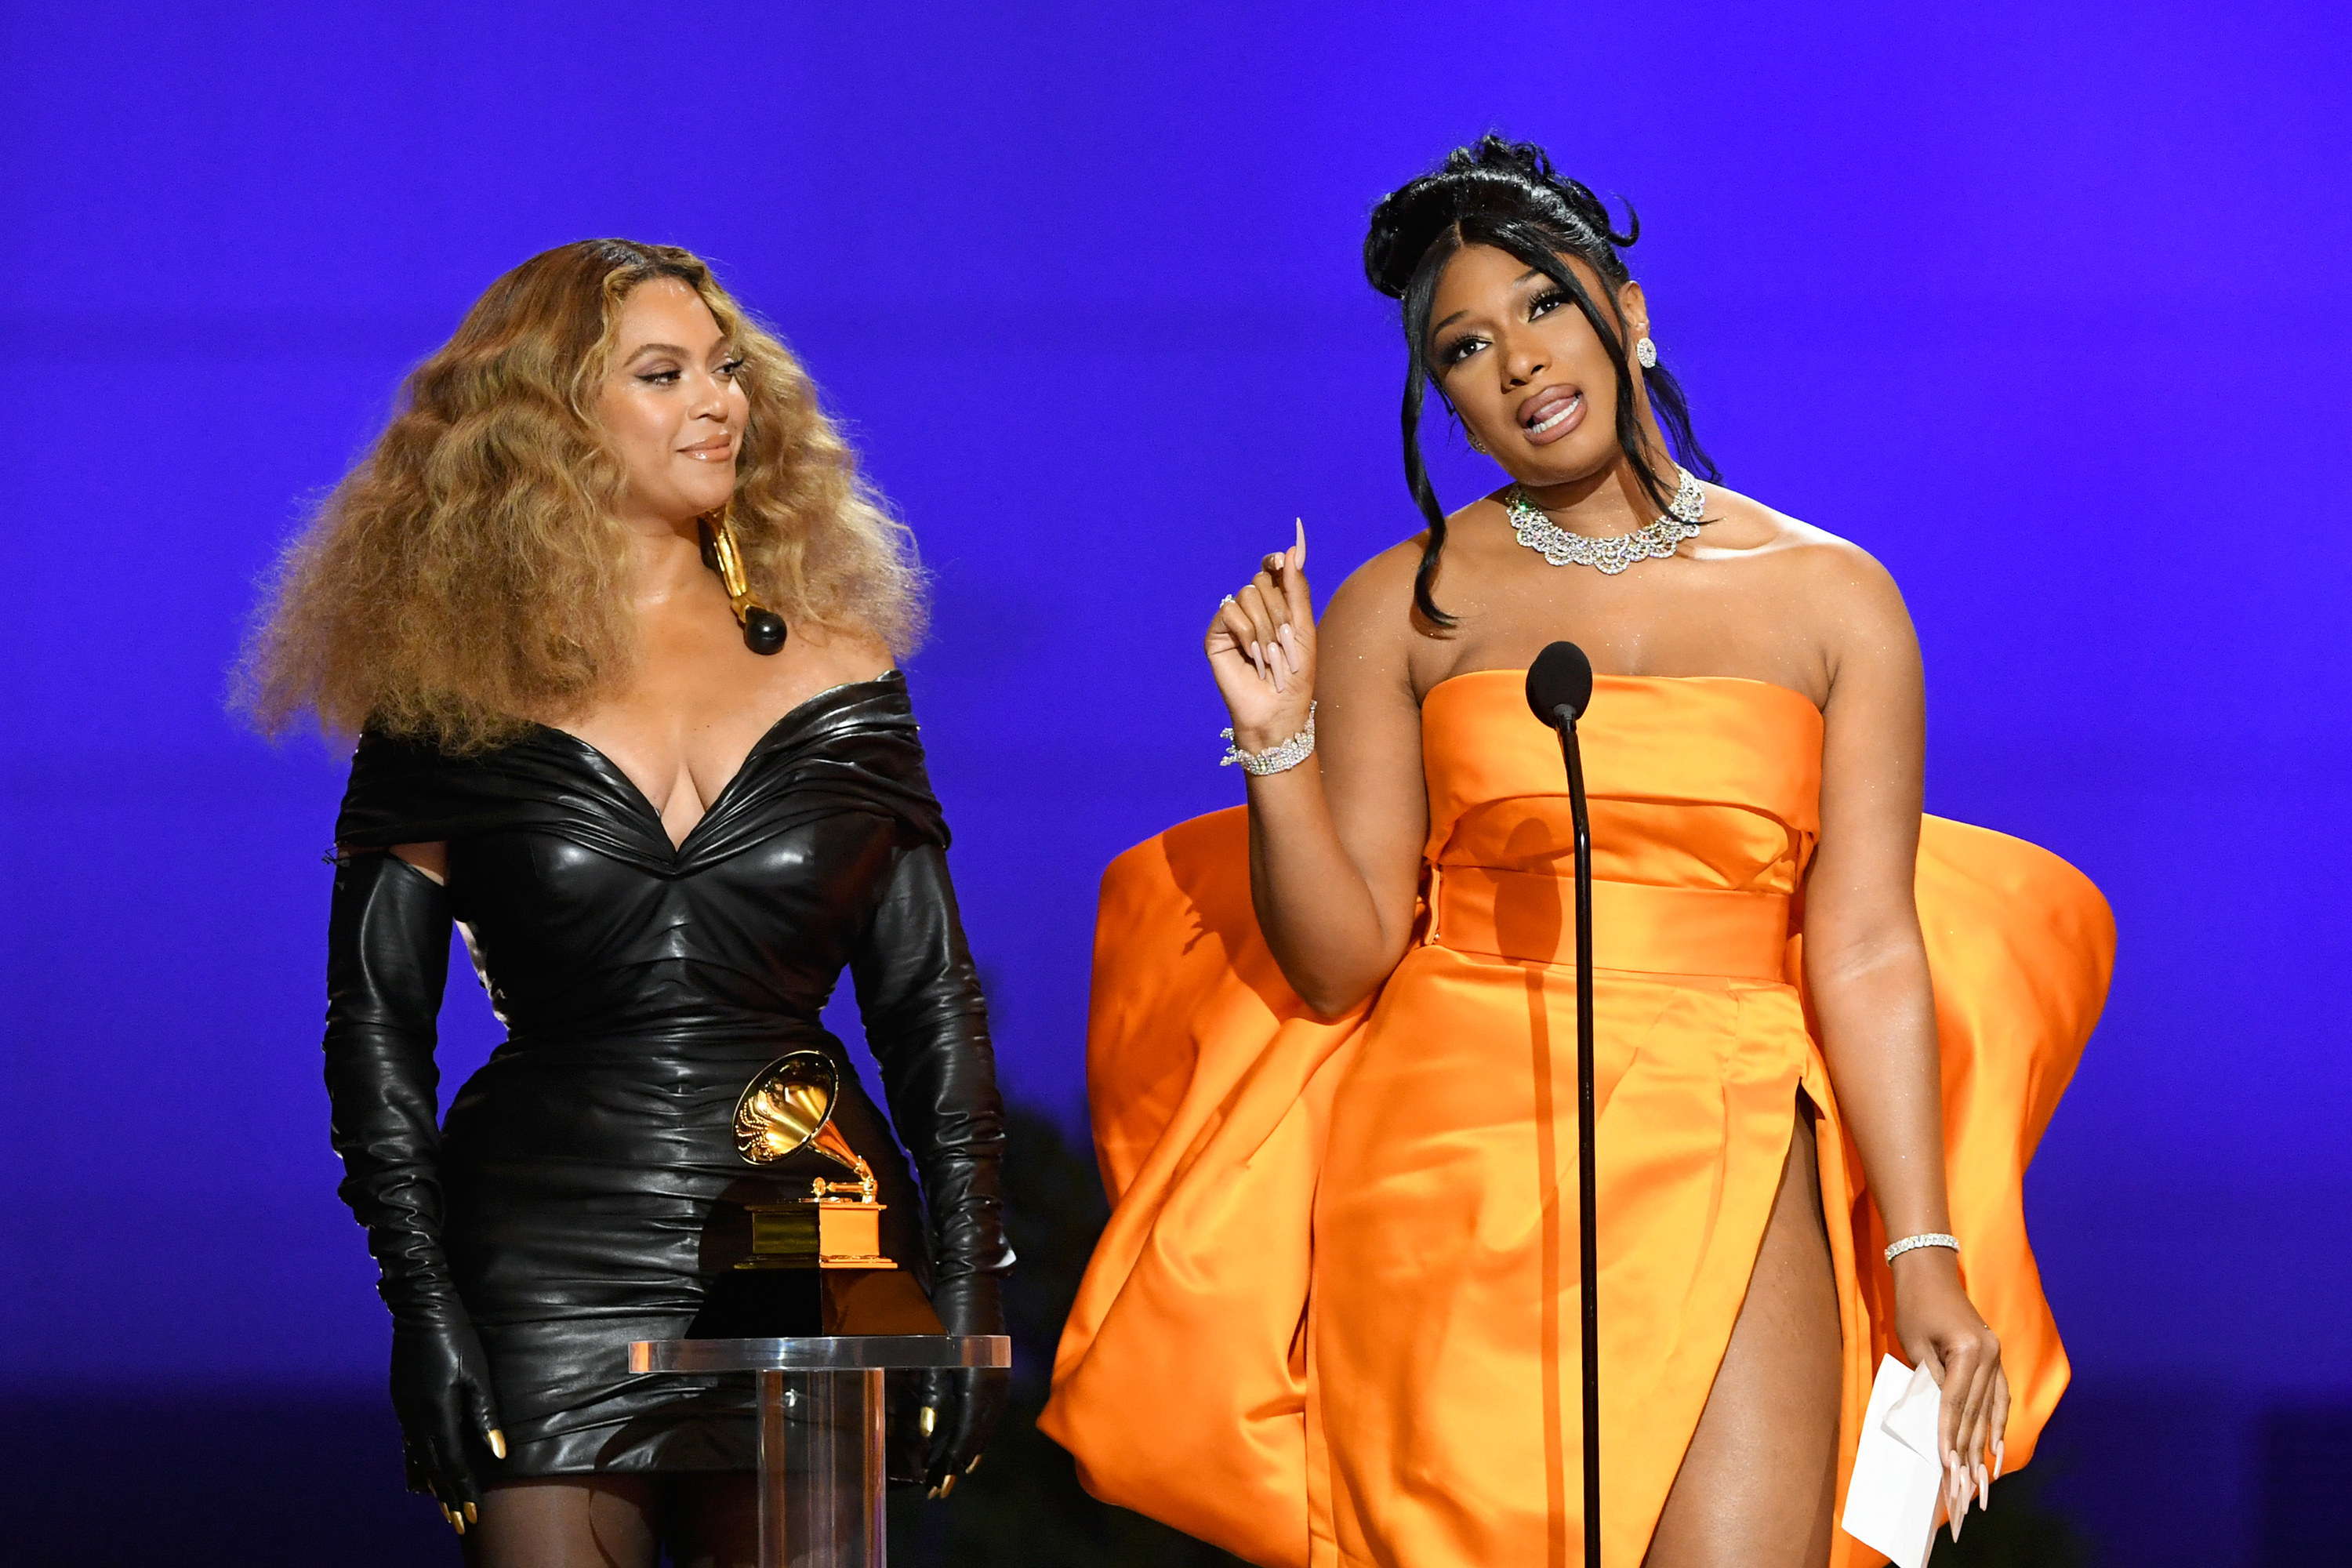 Beyoncé and Megan Thee Stallion accept the Best Rap Performance award at the 2021 Grammys